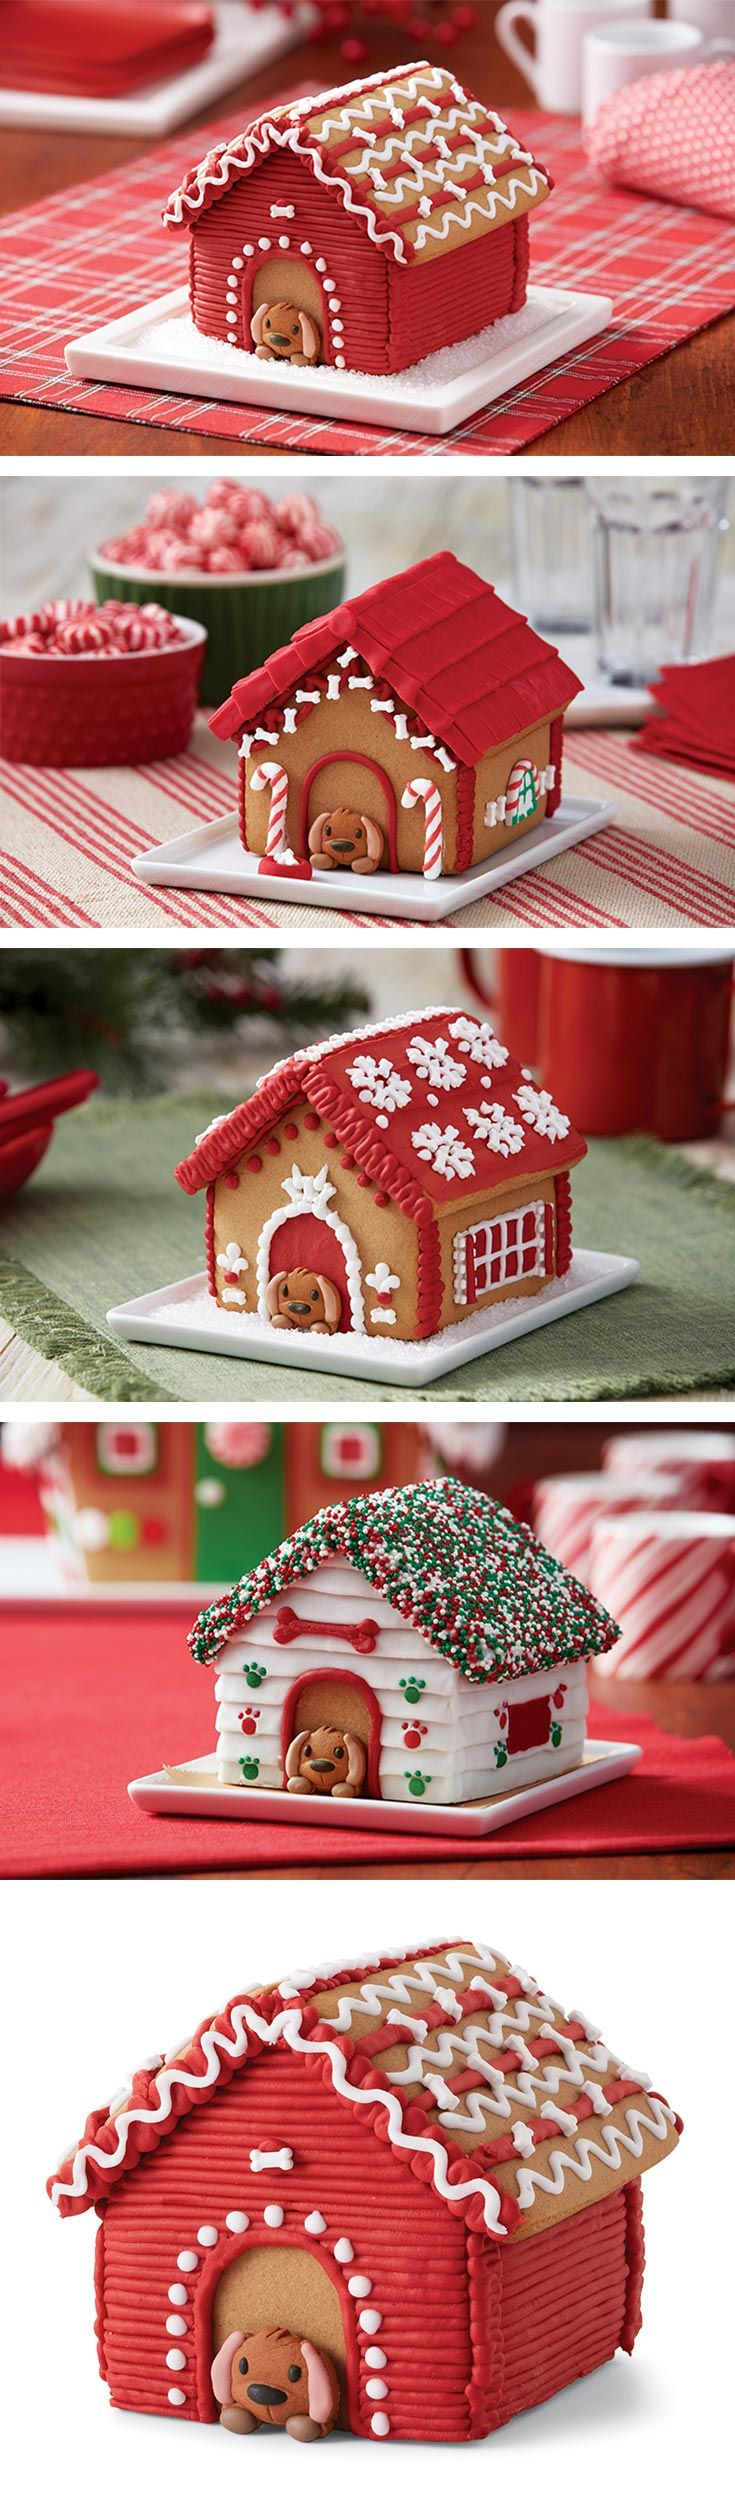 4 ways to decorate your gingerbread dog house | Gingerbread ... German Gingerbread House Designs on german lebkuchen, german chocolate, german bread, german peach tart, german cakes, german incense smoker houses, german christmas houses, german christkind, german cooking, german holidays, german heart, german cookie house, old-fashioned german house, german nativity, german desserts,